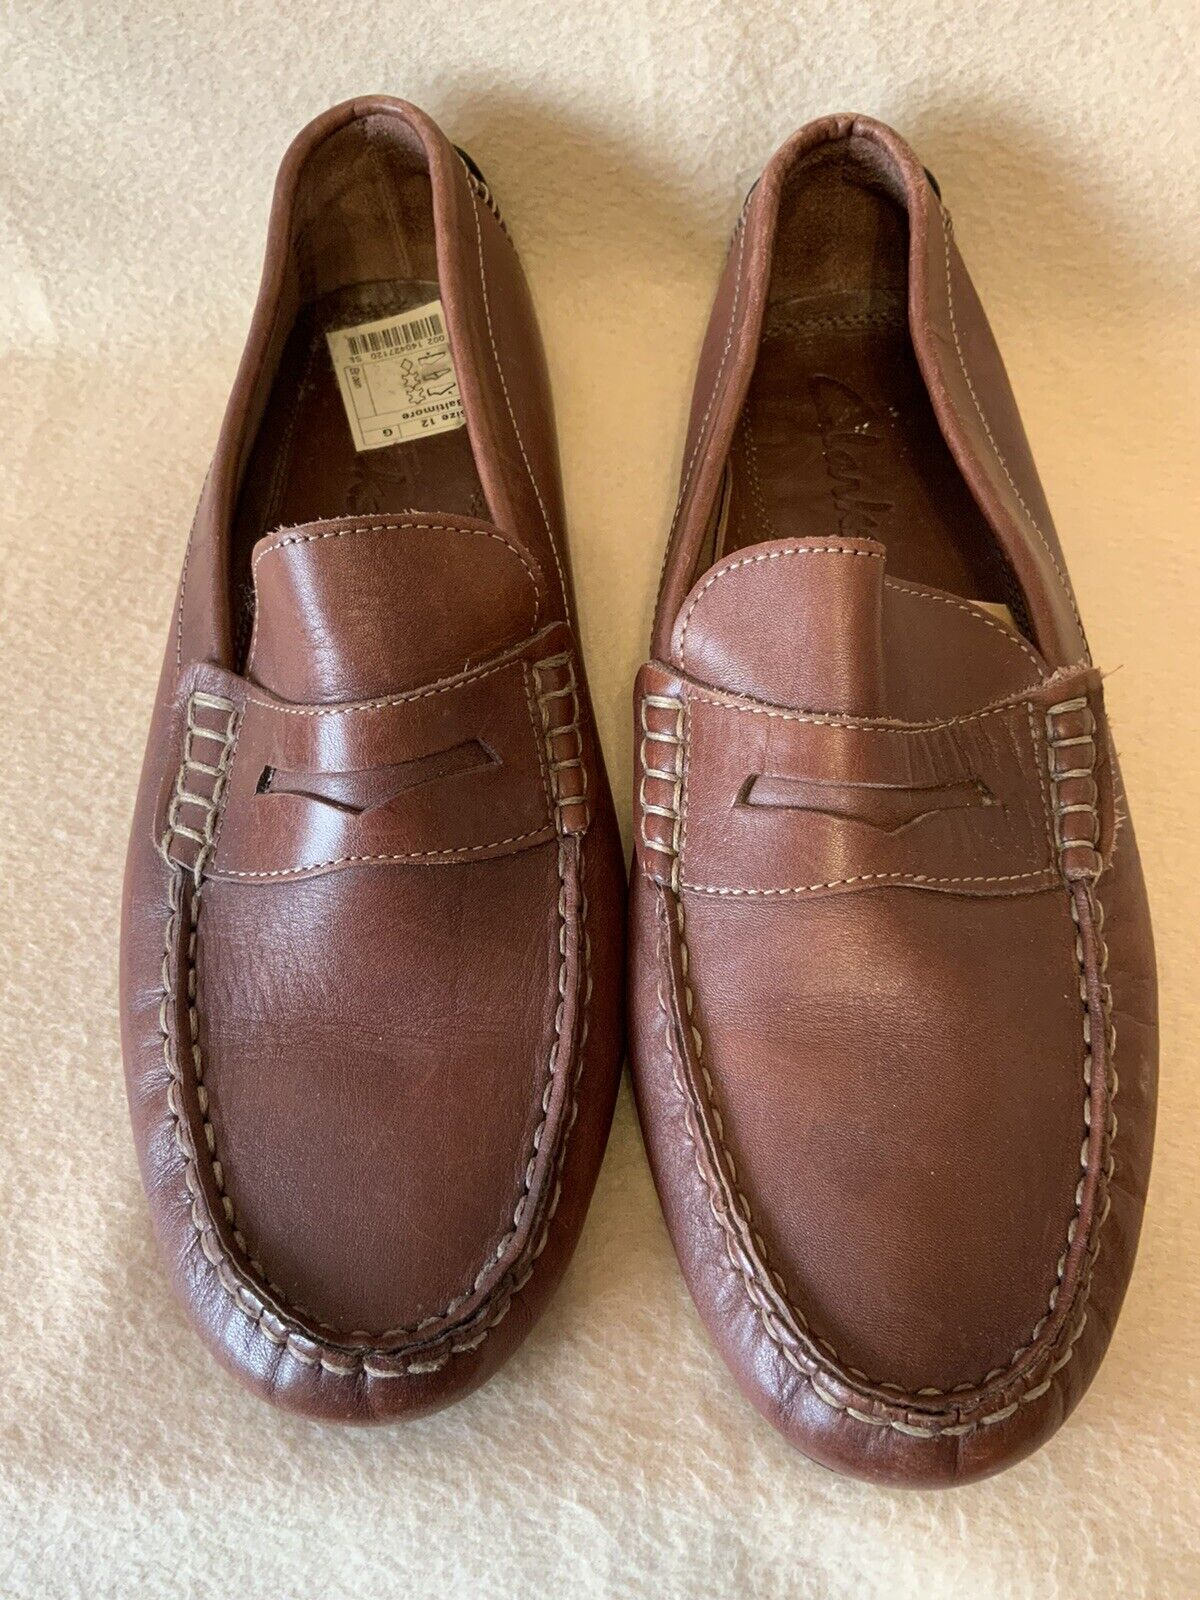 Men's/Gents Clarks Shoes 12 Brown Leather Casual Worn ONCE Excellent Condition